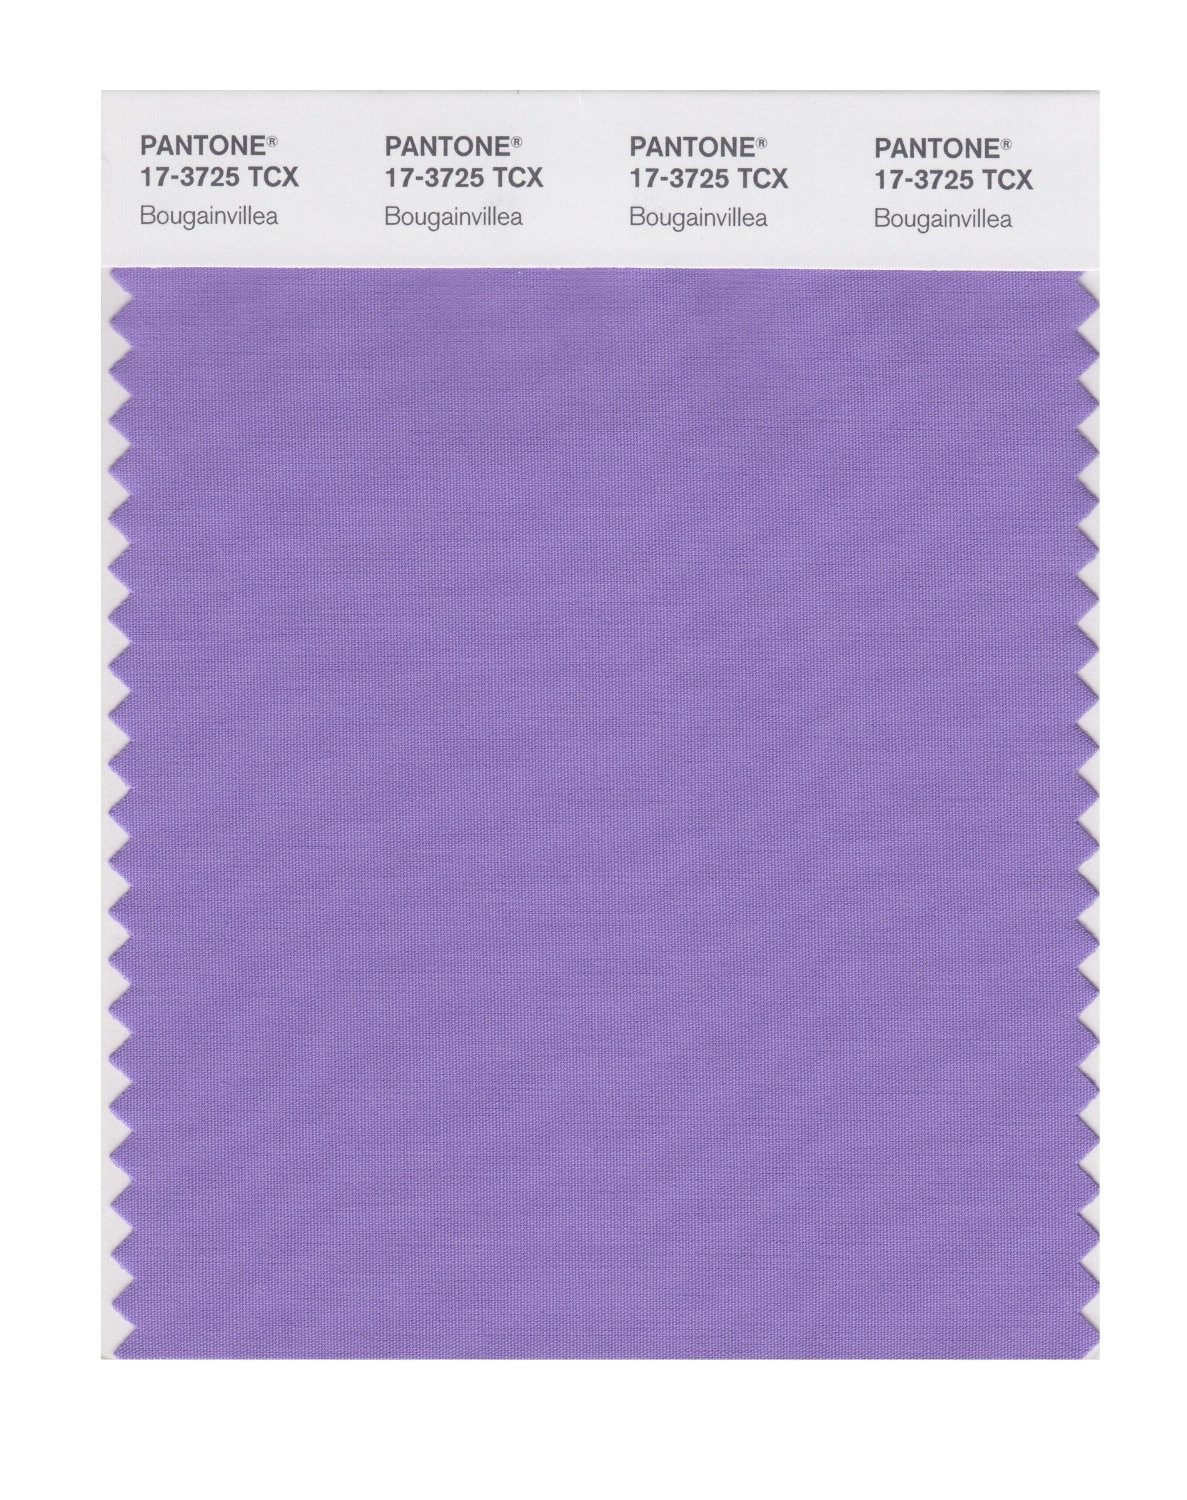 Pantone 17-3725 TCX Swatch Card Bougainville